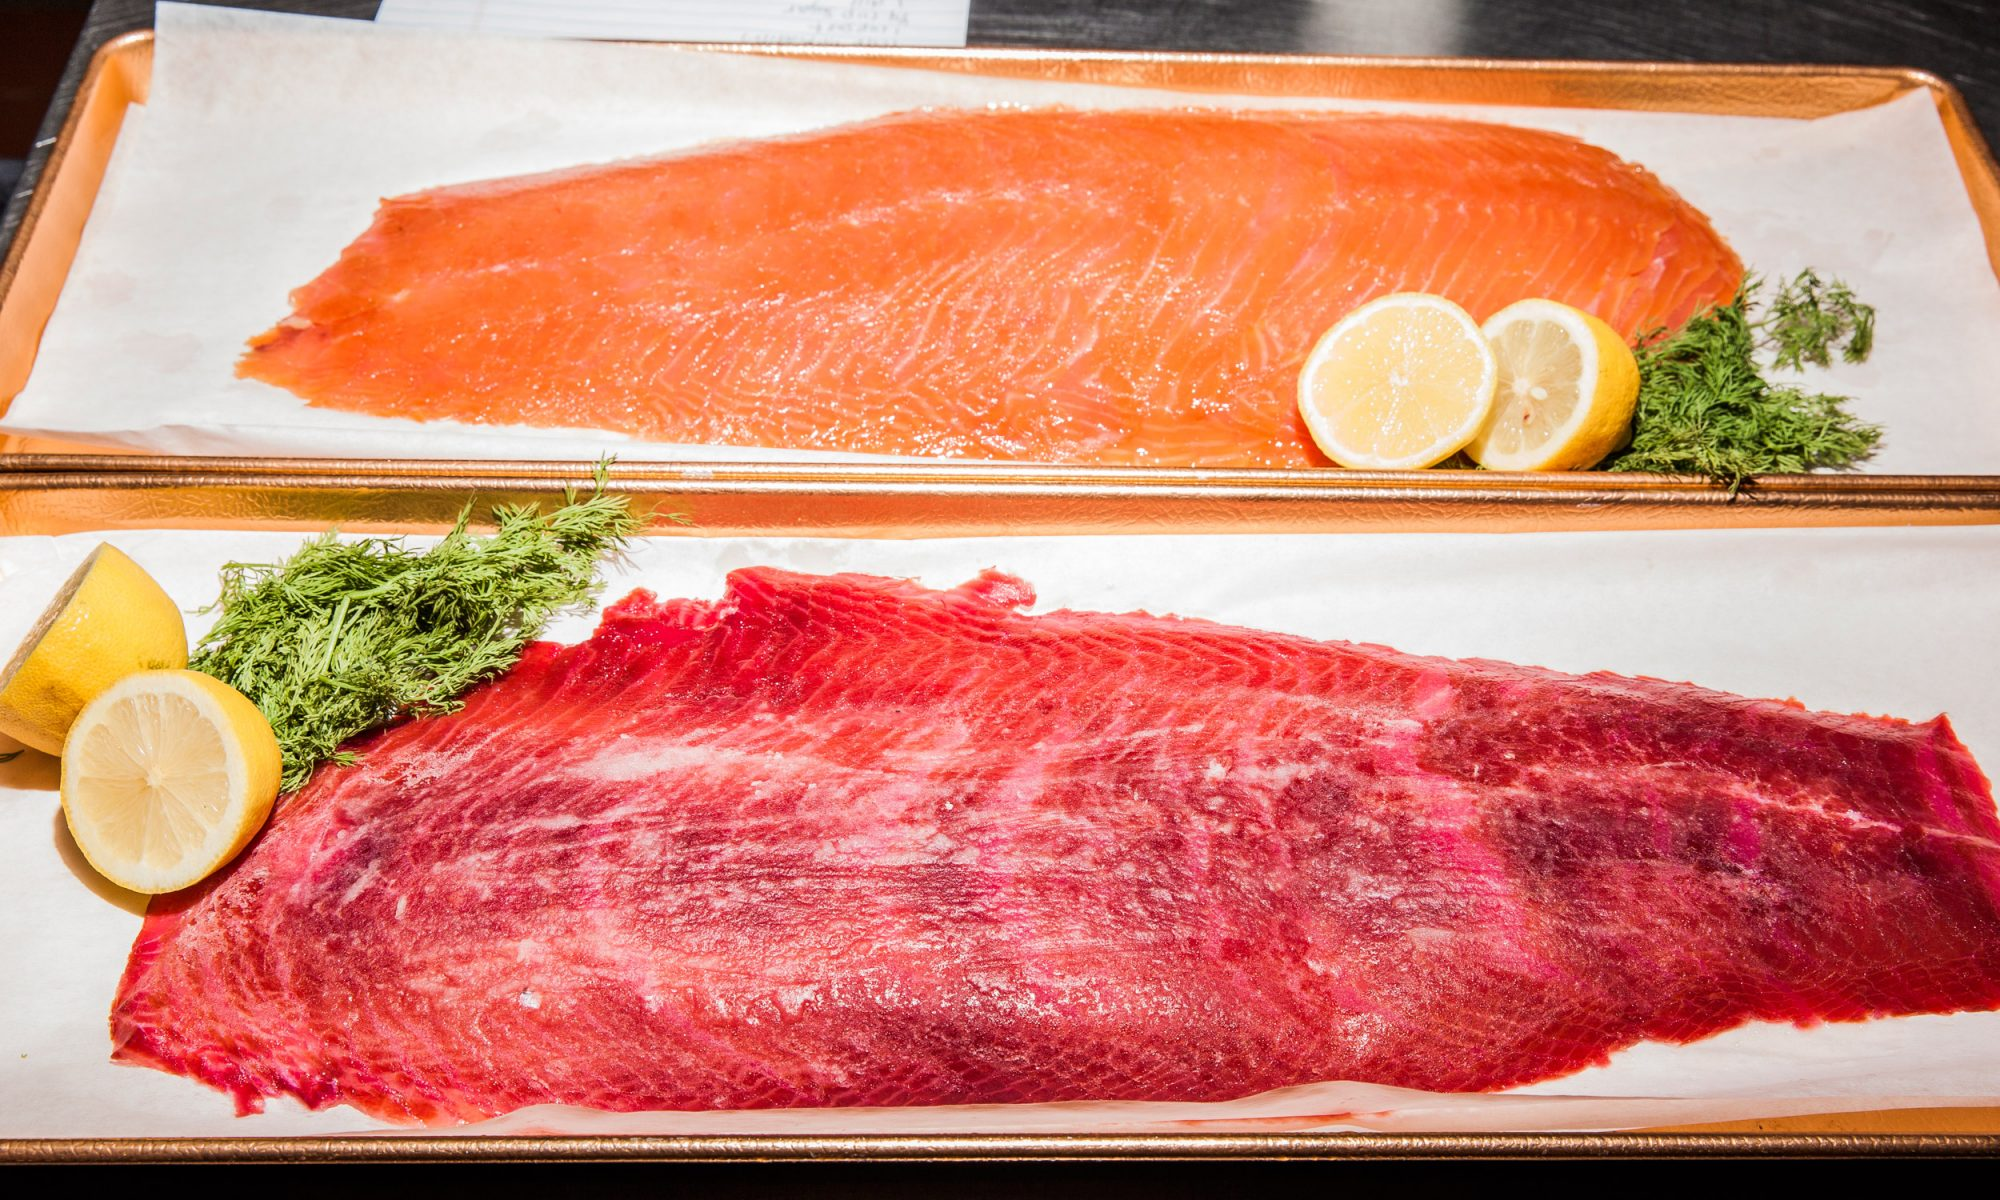 EC: Yes, You Can Make Beet-Cured Lox at Home